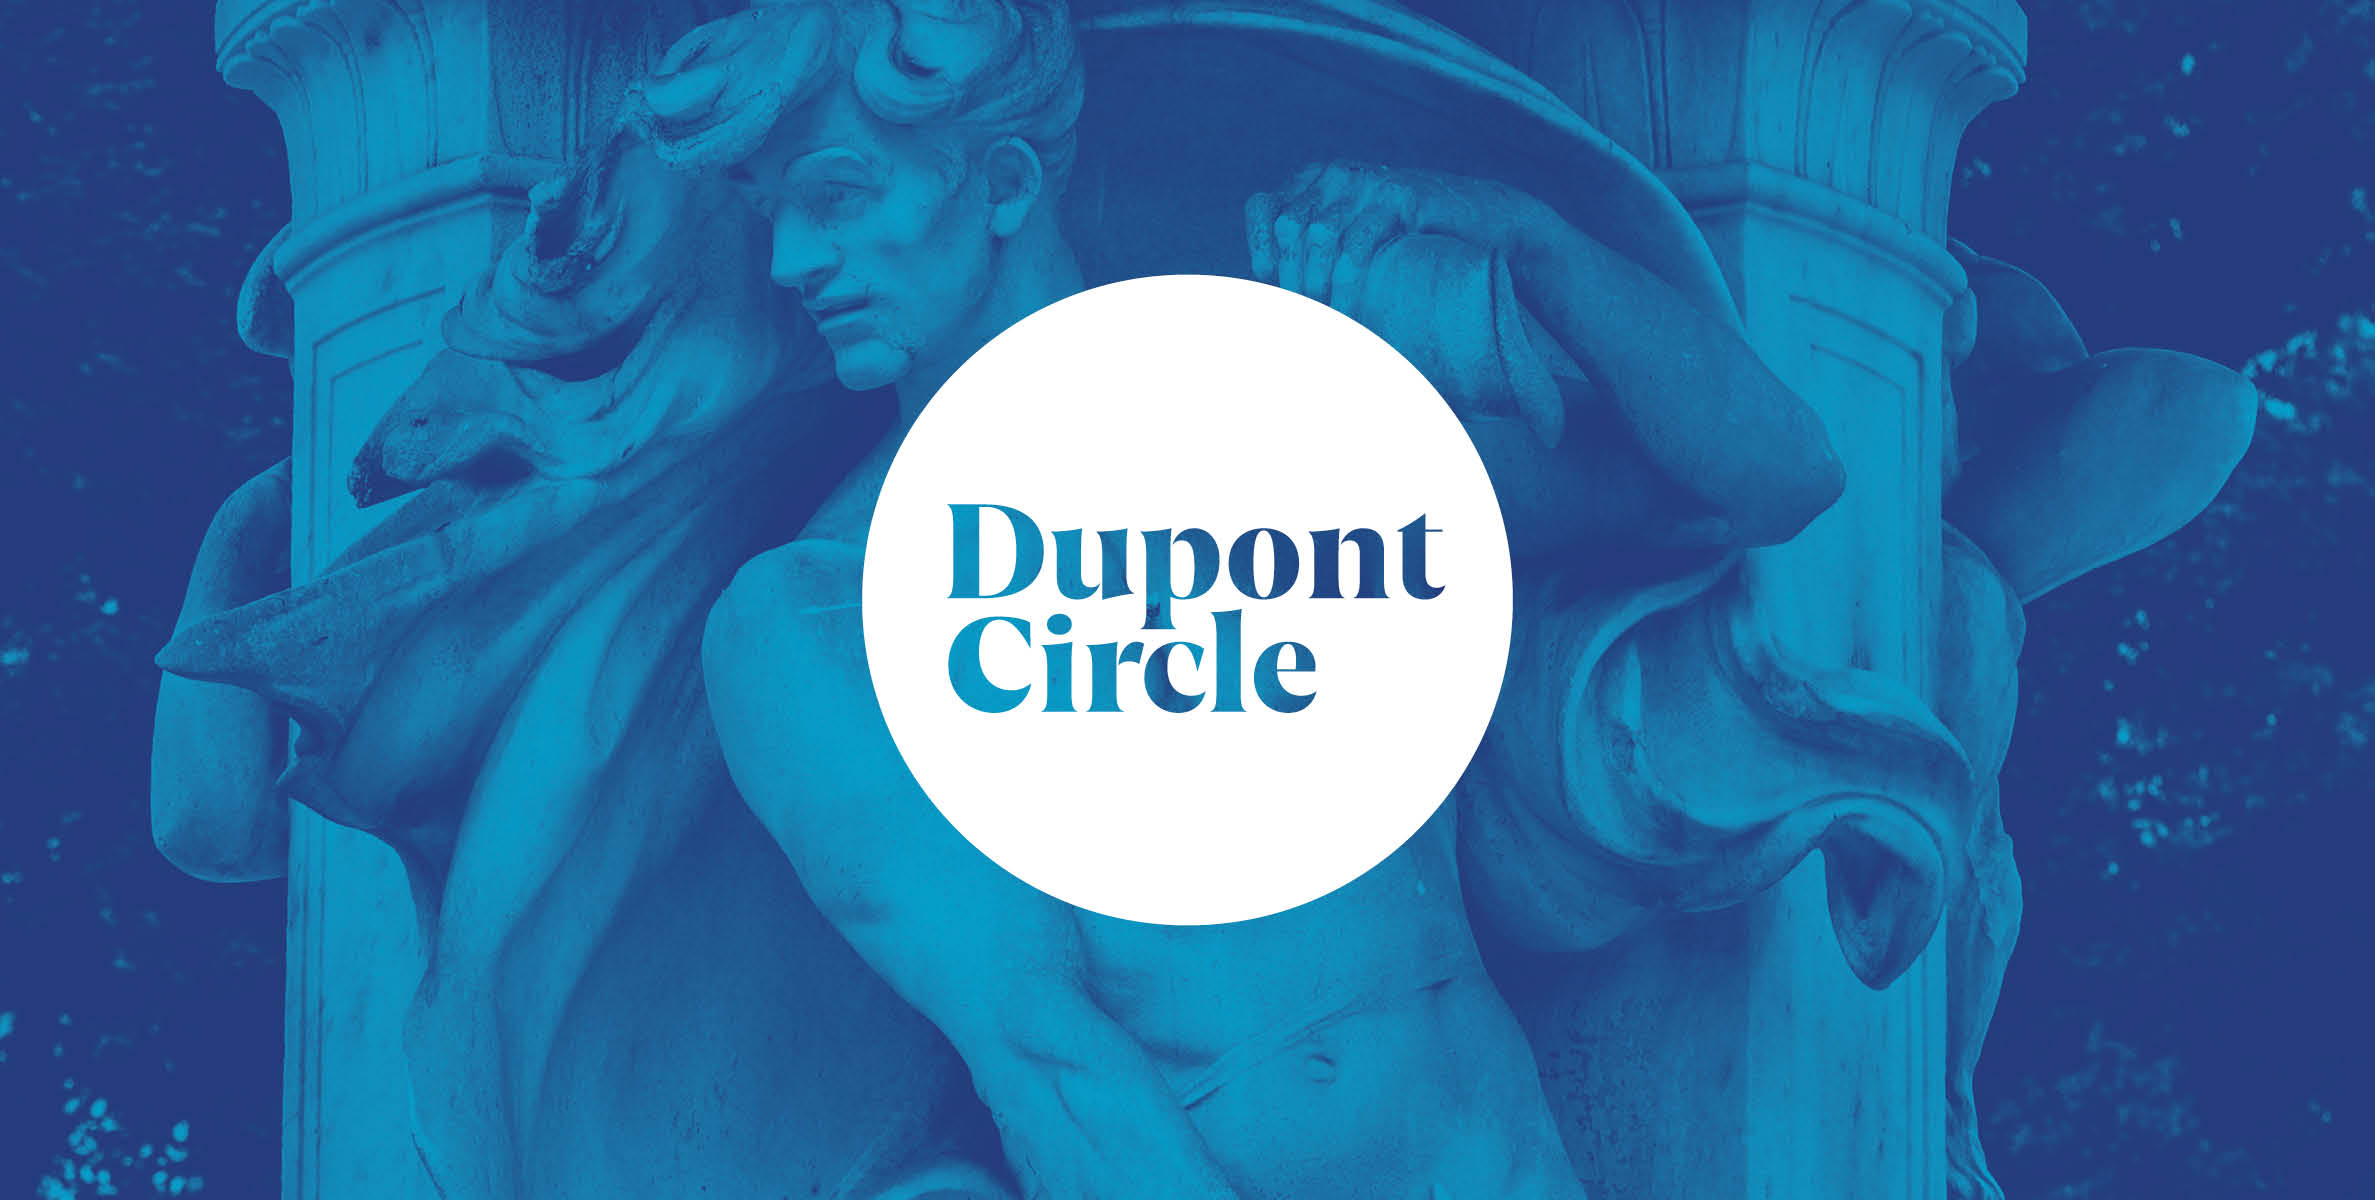 Dupont Circle cover image